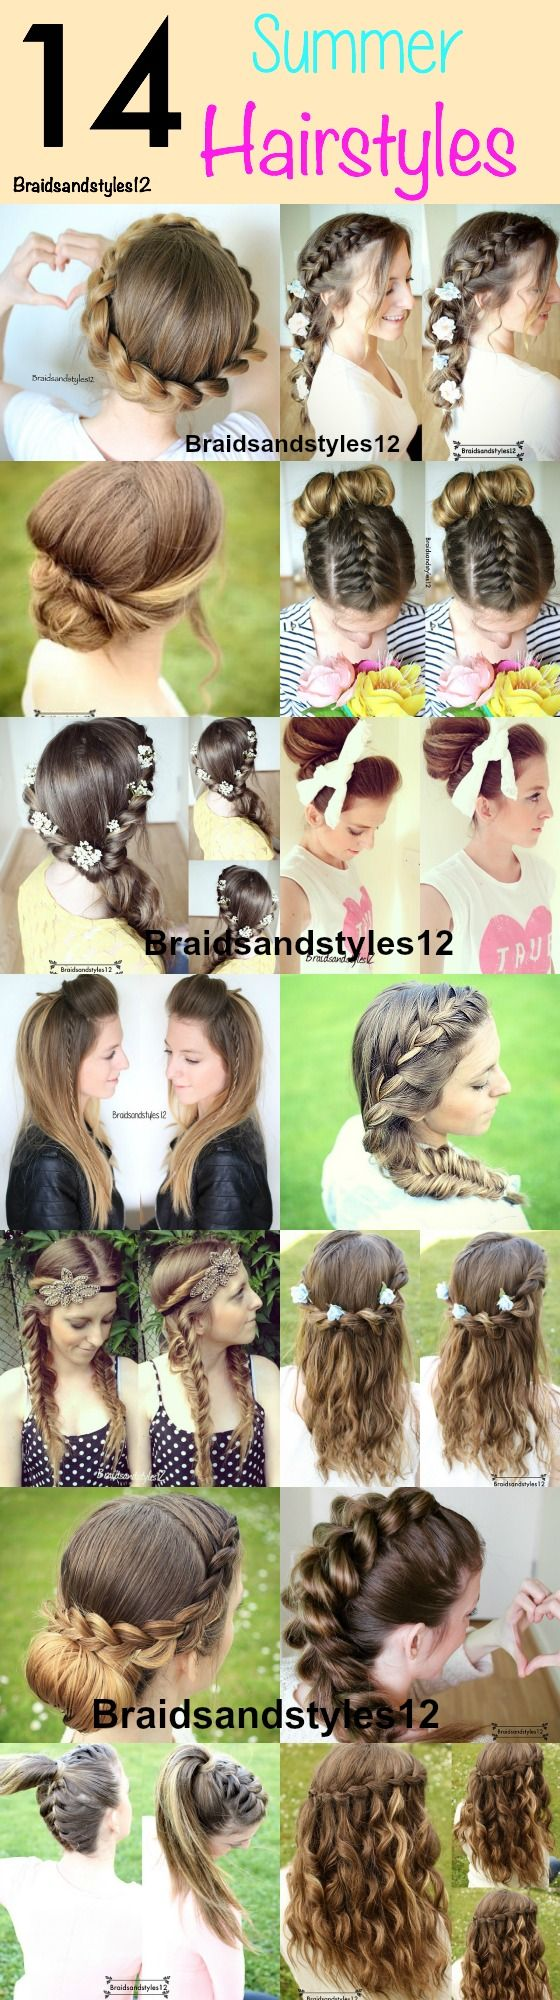 14 Braids and Hairstyles perfect for  Summer , Summer Braids . Summer Hairstyles by Braidsandstyles12  Youtube : https://www.youtube.com/channel/UC8ouEGIBm1GNFabA_eoFbOQ